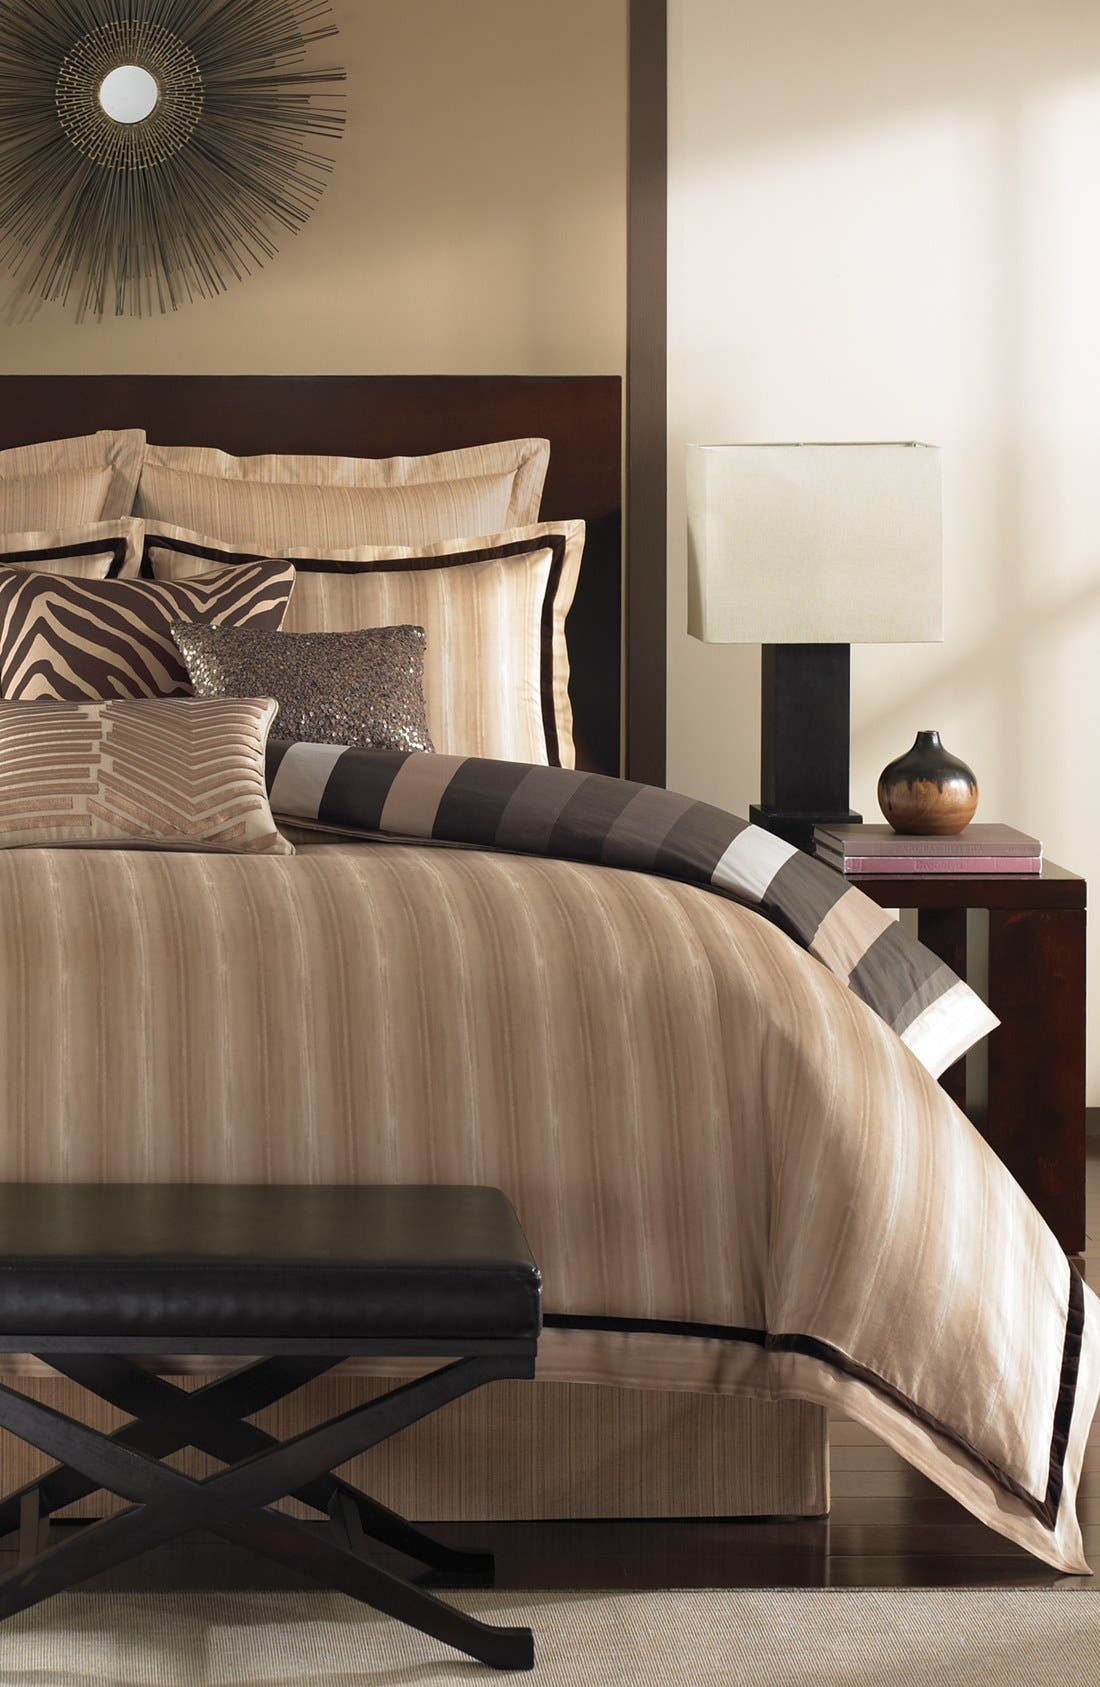 Alternate Image 1 Selected - Vince Camuto 'Buenos Aires' Comforter Set